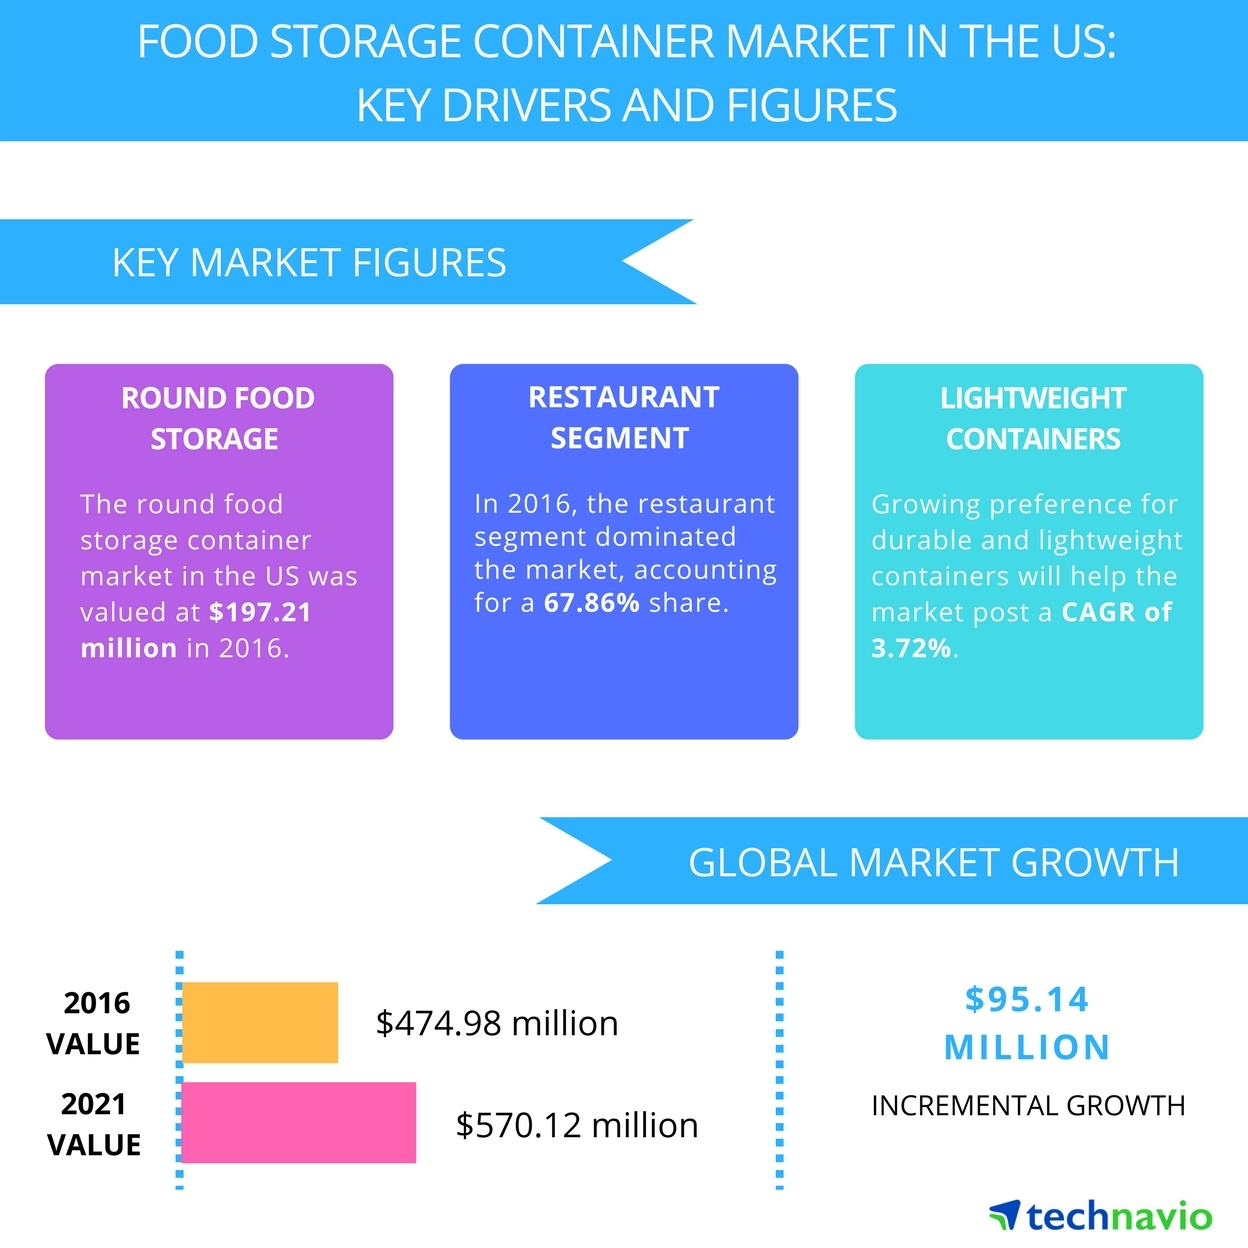 Food Storage Container Market in the US Top Three Trends and